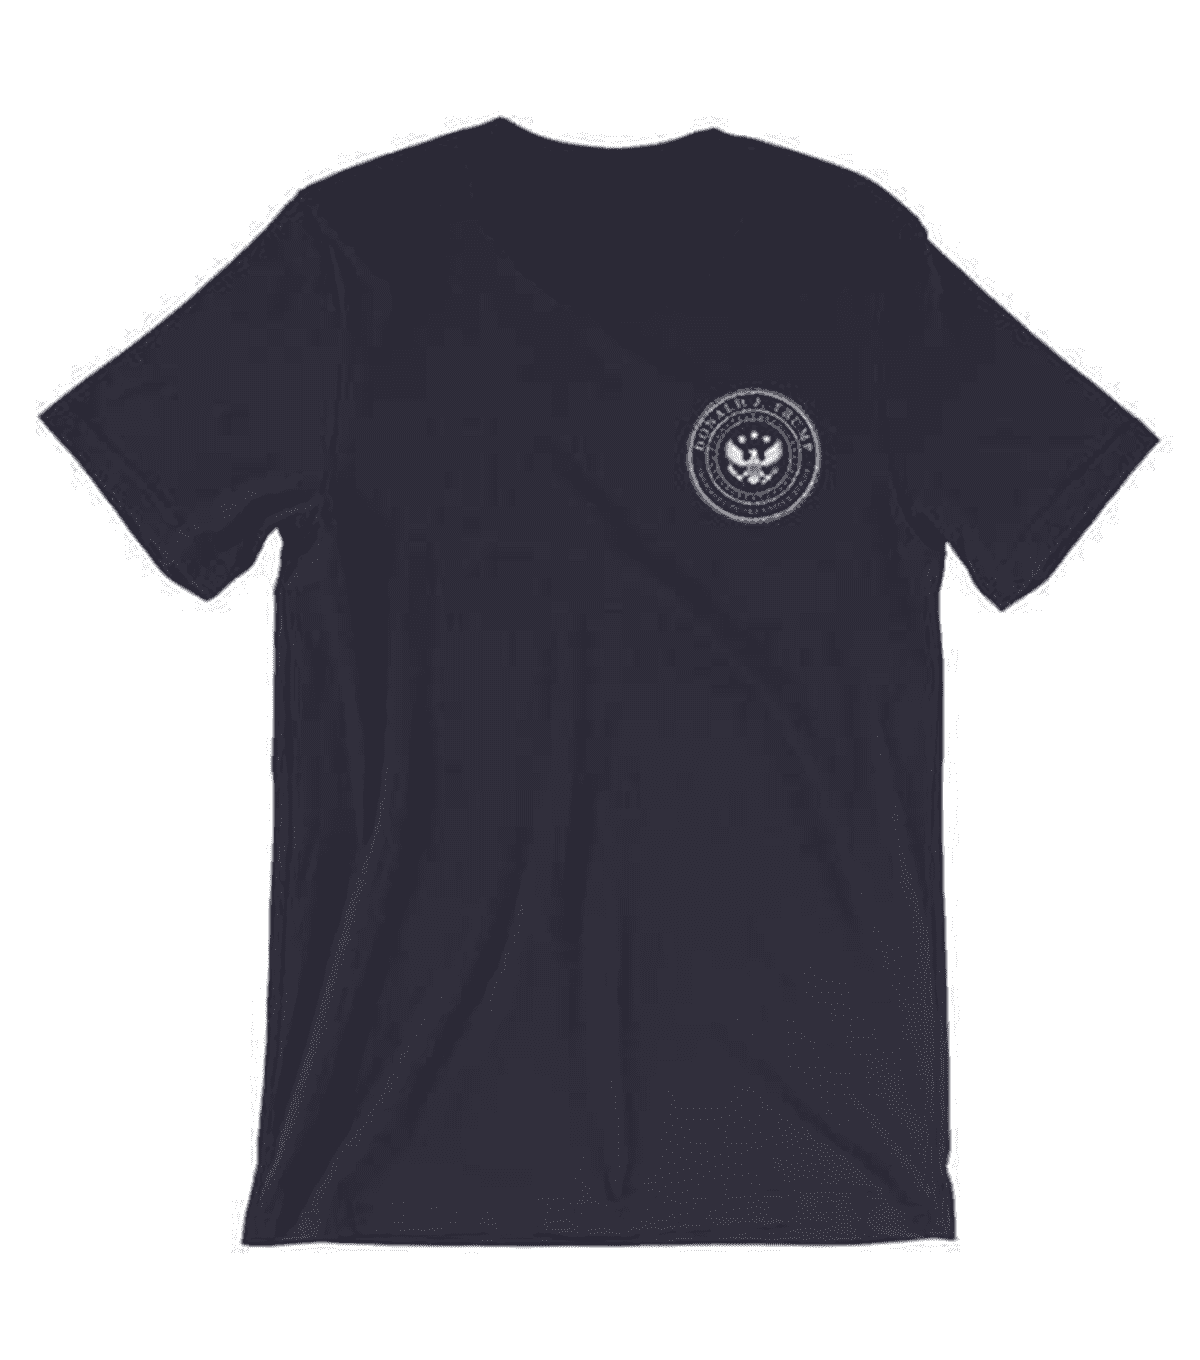 Navy & White Presidential T-Shirt